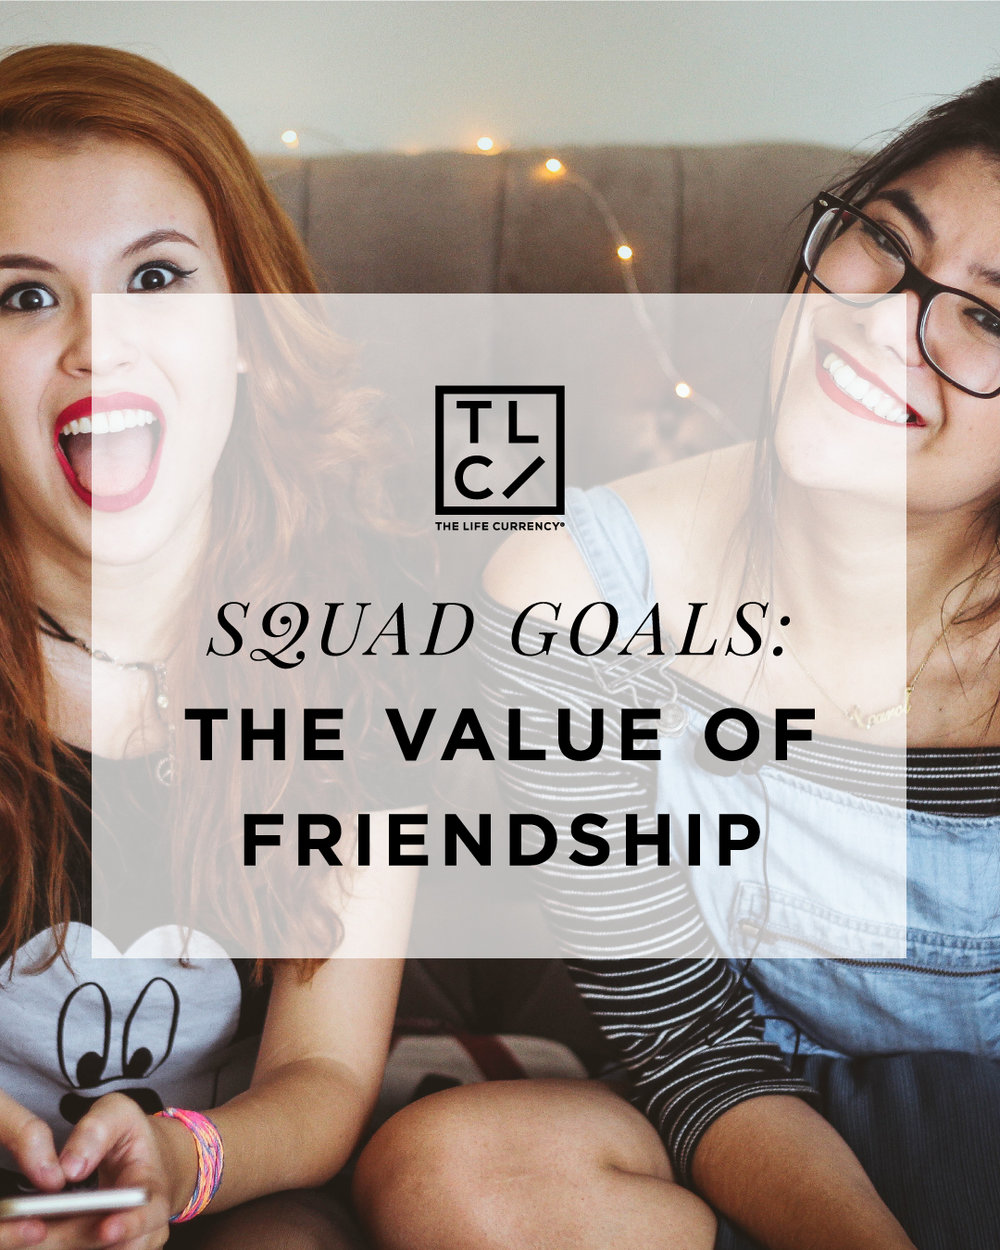 Social media has coined #SquadGoals as an inspirational term for a person's idealized friend group. Although this hashtag has recently gained attention by the media, squads have been around for ages. The most iconic duos and trios can be traced all the way back to our ancestors and even groups such as Destiny's Child who went on to make history.